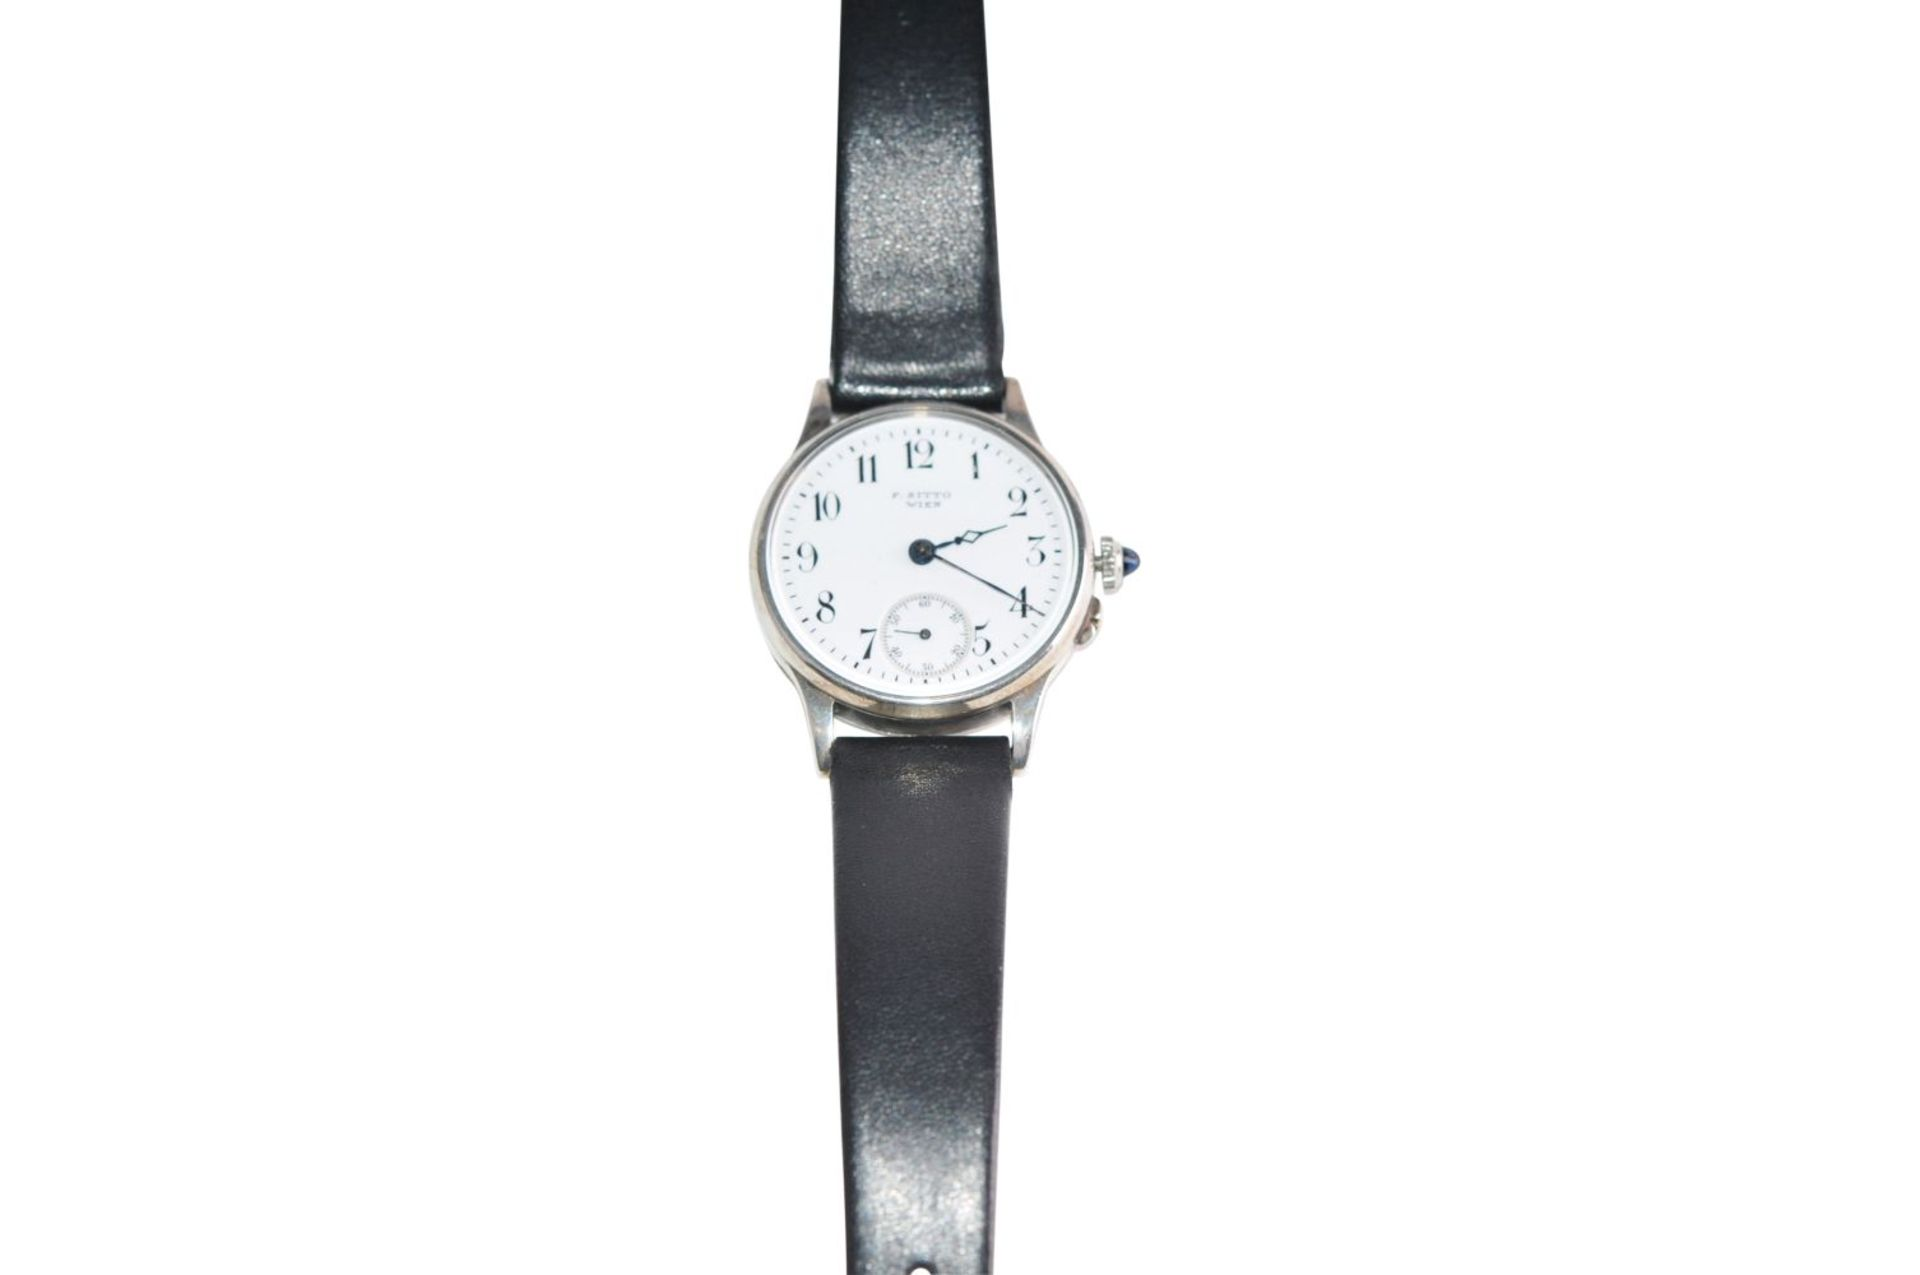 Los 55 - Sitto WienVintage steel men's watch from the 40s enamel dial, manual winding, auxiliary secondsSitto